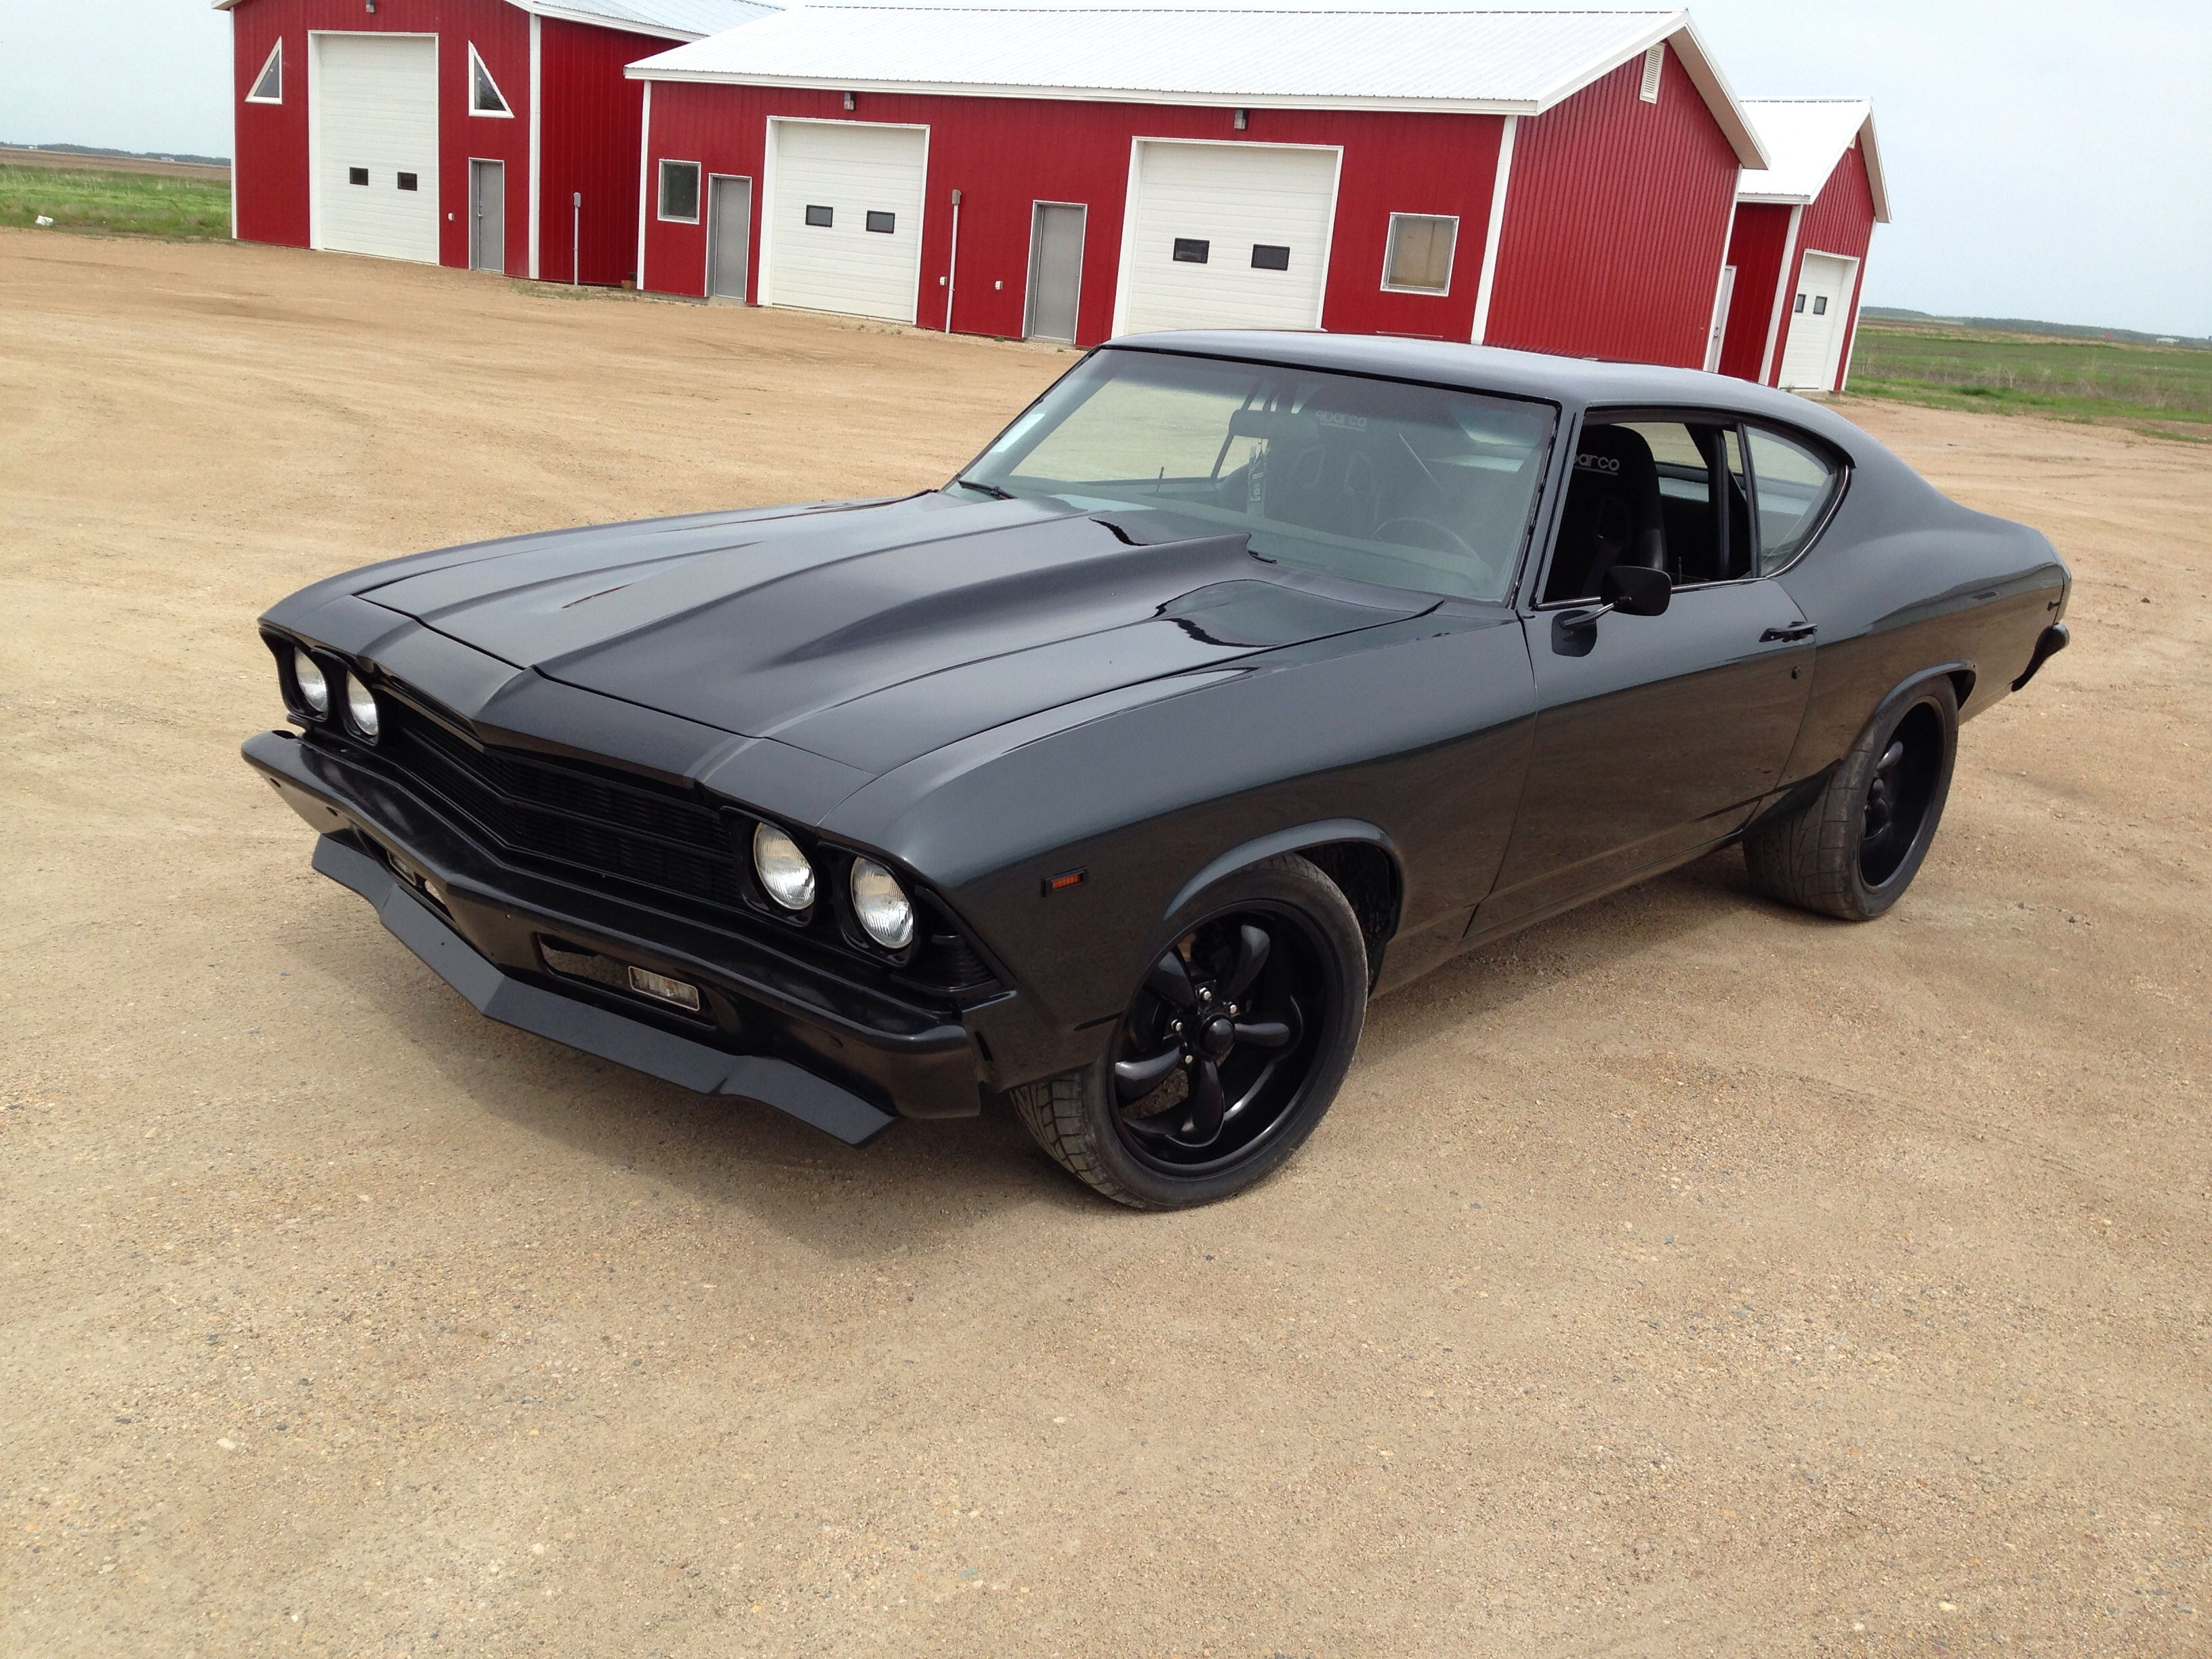 Best 20 1969 chevelle ideas on pinterest black car paint chevy chevelle ss and muscle cars